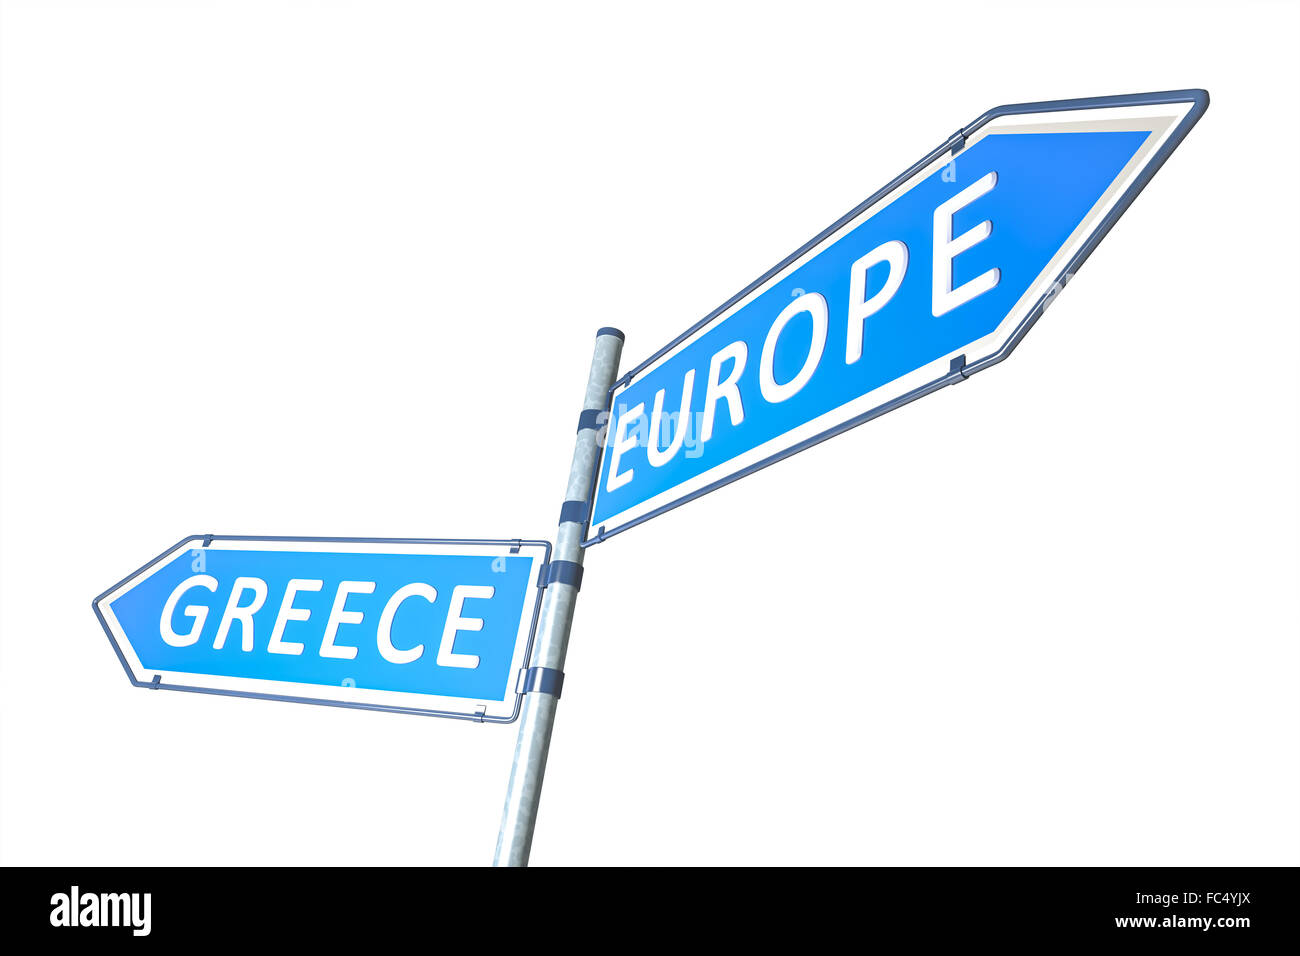 Greece Europe Road Sign - Stock Image